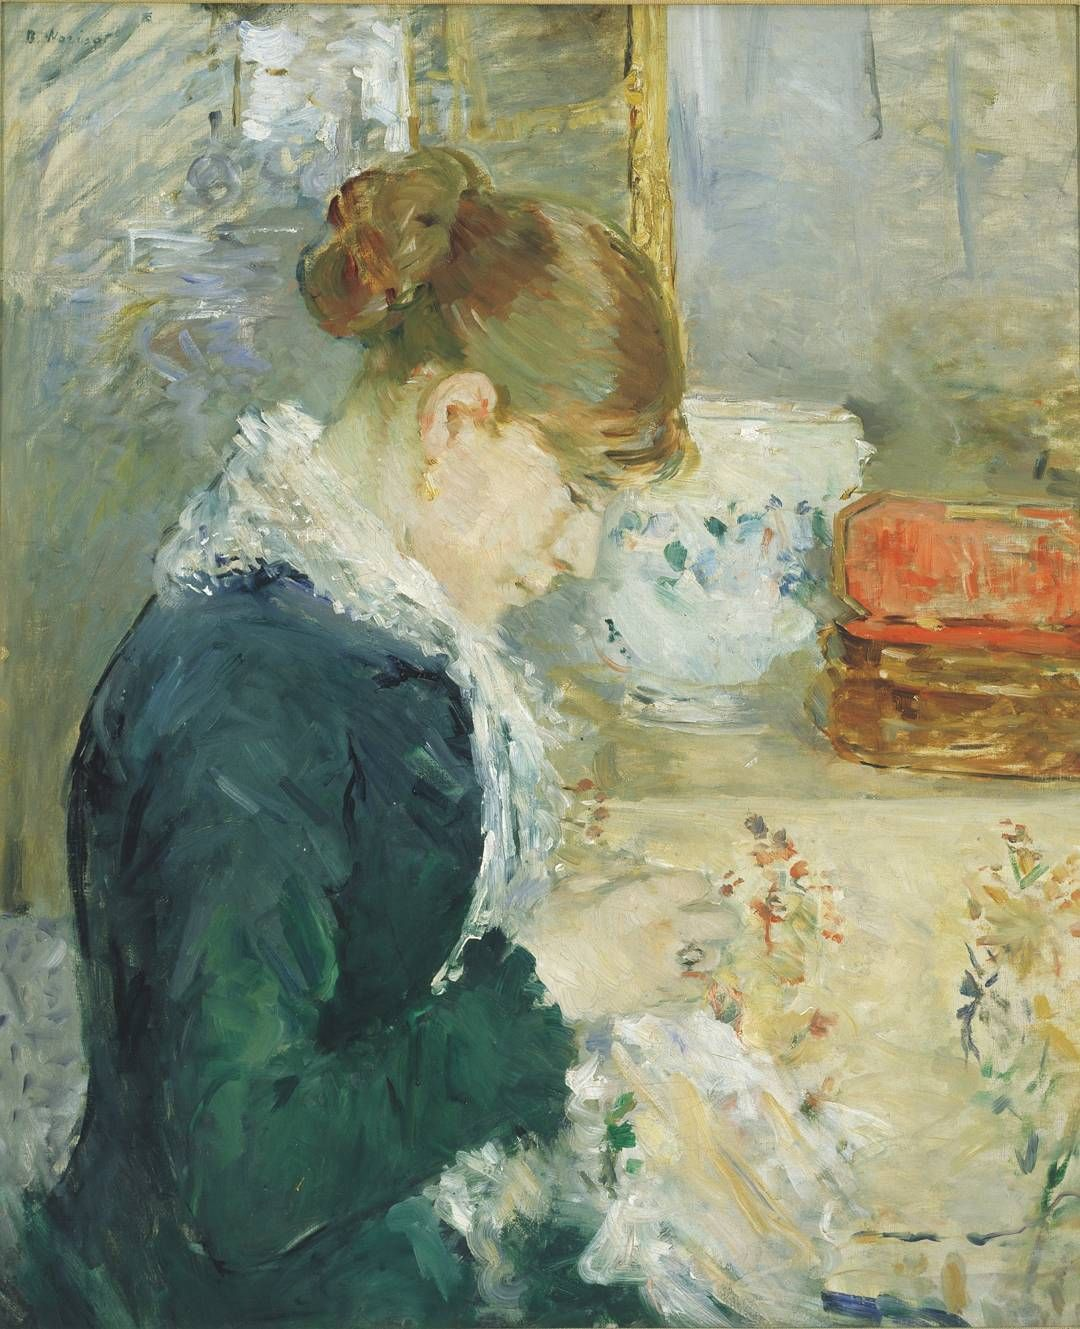 """Albright-Knox Art Gallery on Instagram: """"Here is a full view of today's  #WhatIsItWednesday puzzle: Berthe Morisot's """"Woman Sewing,"""" … 